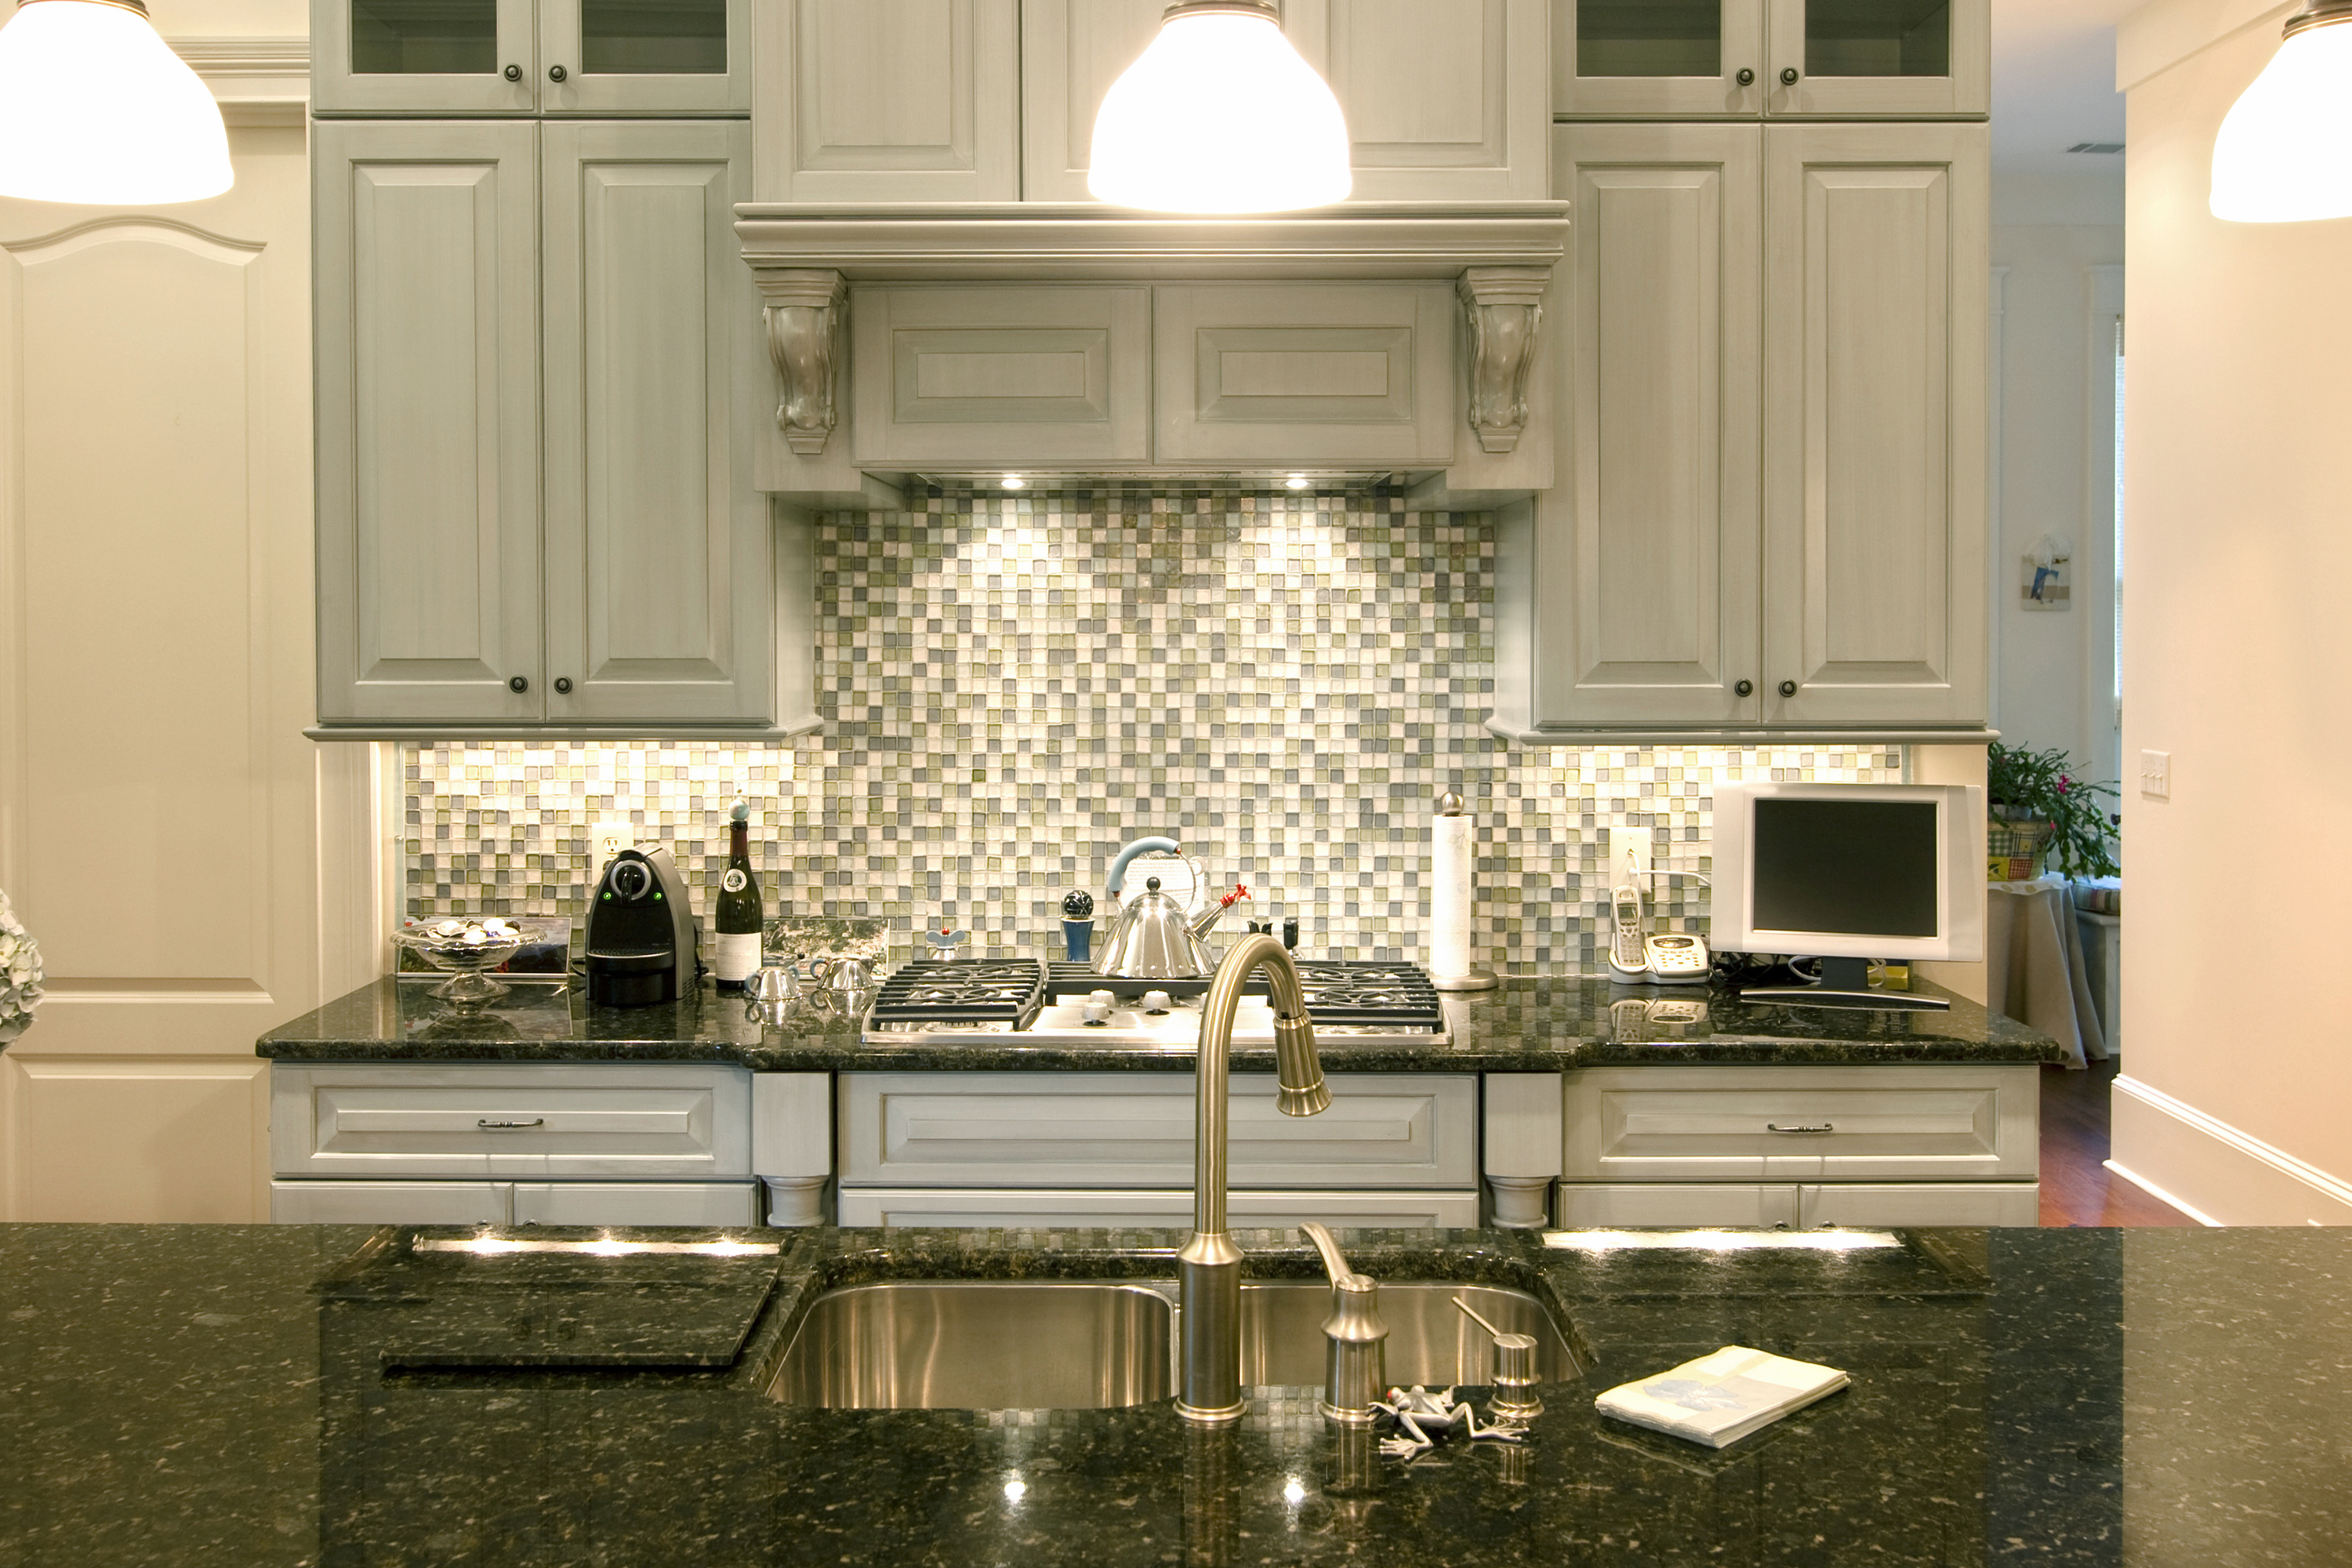 The best backsplash ideas for black granite countertops for Kitchen designs backsplash